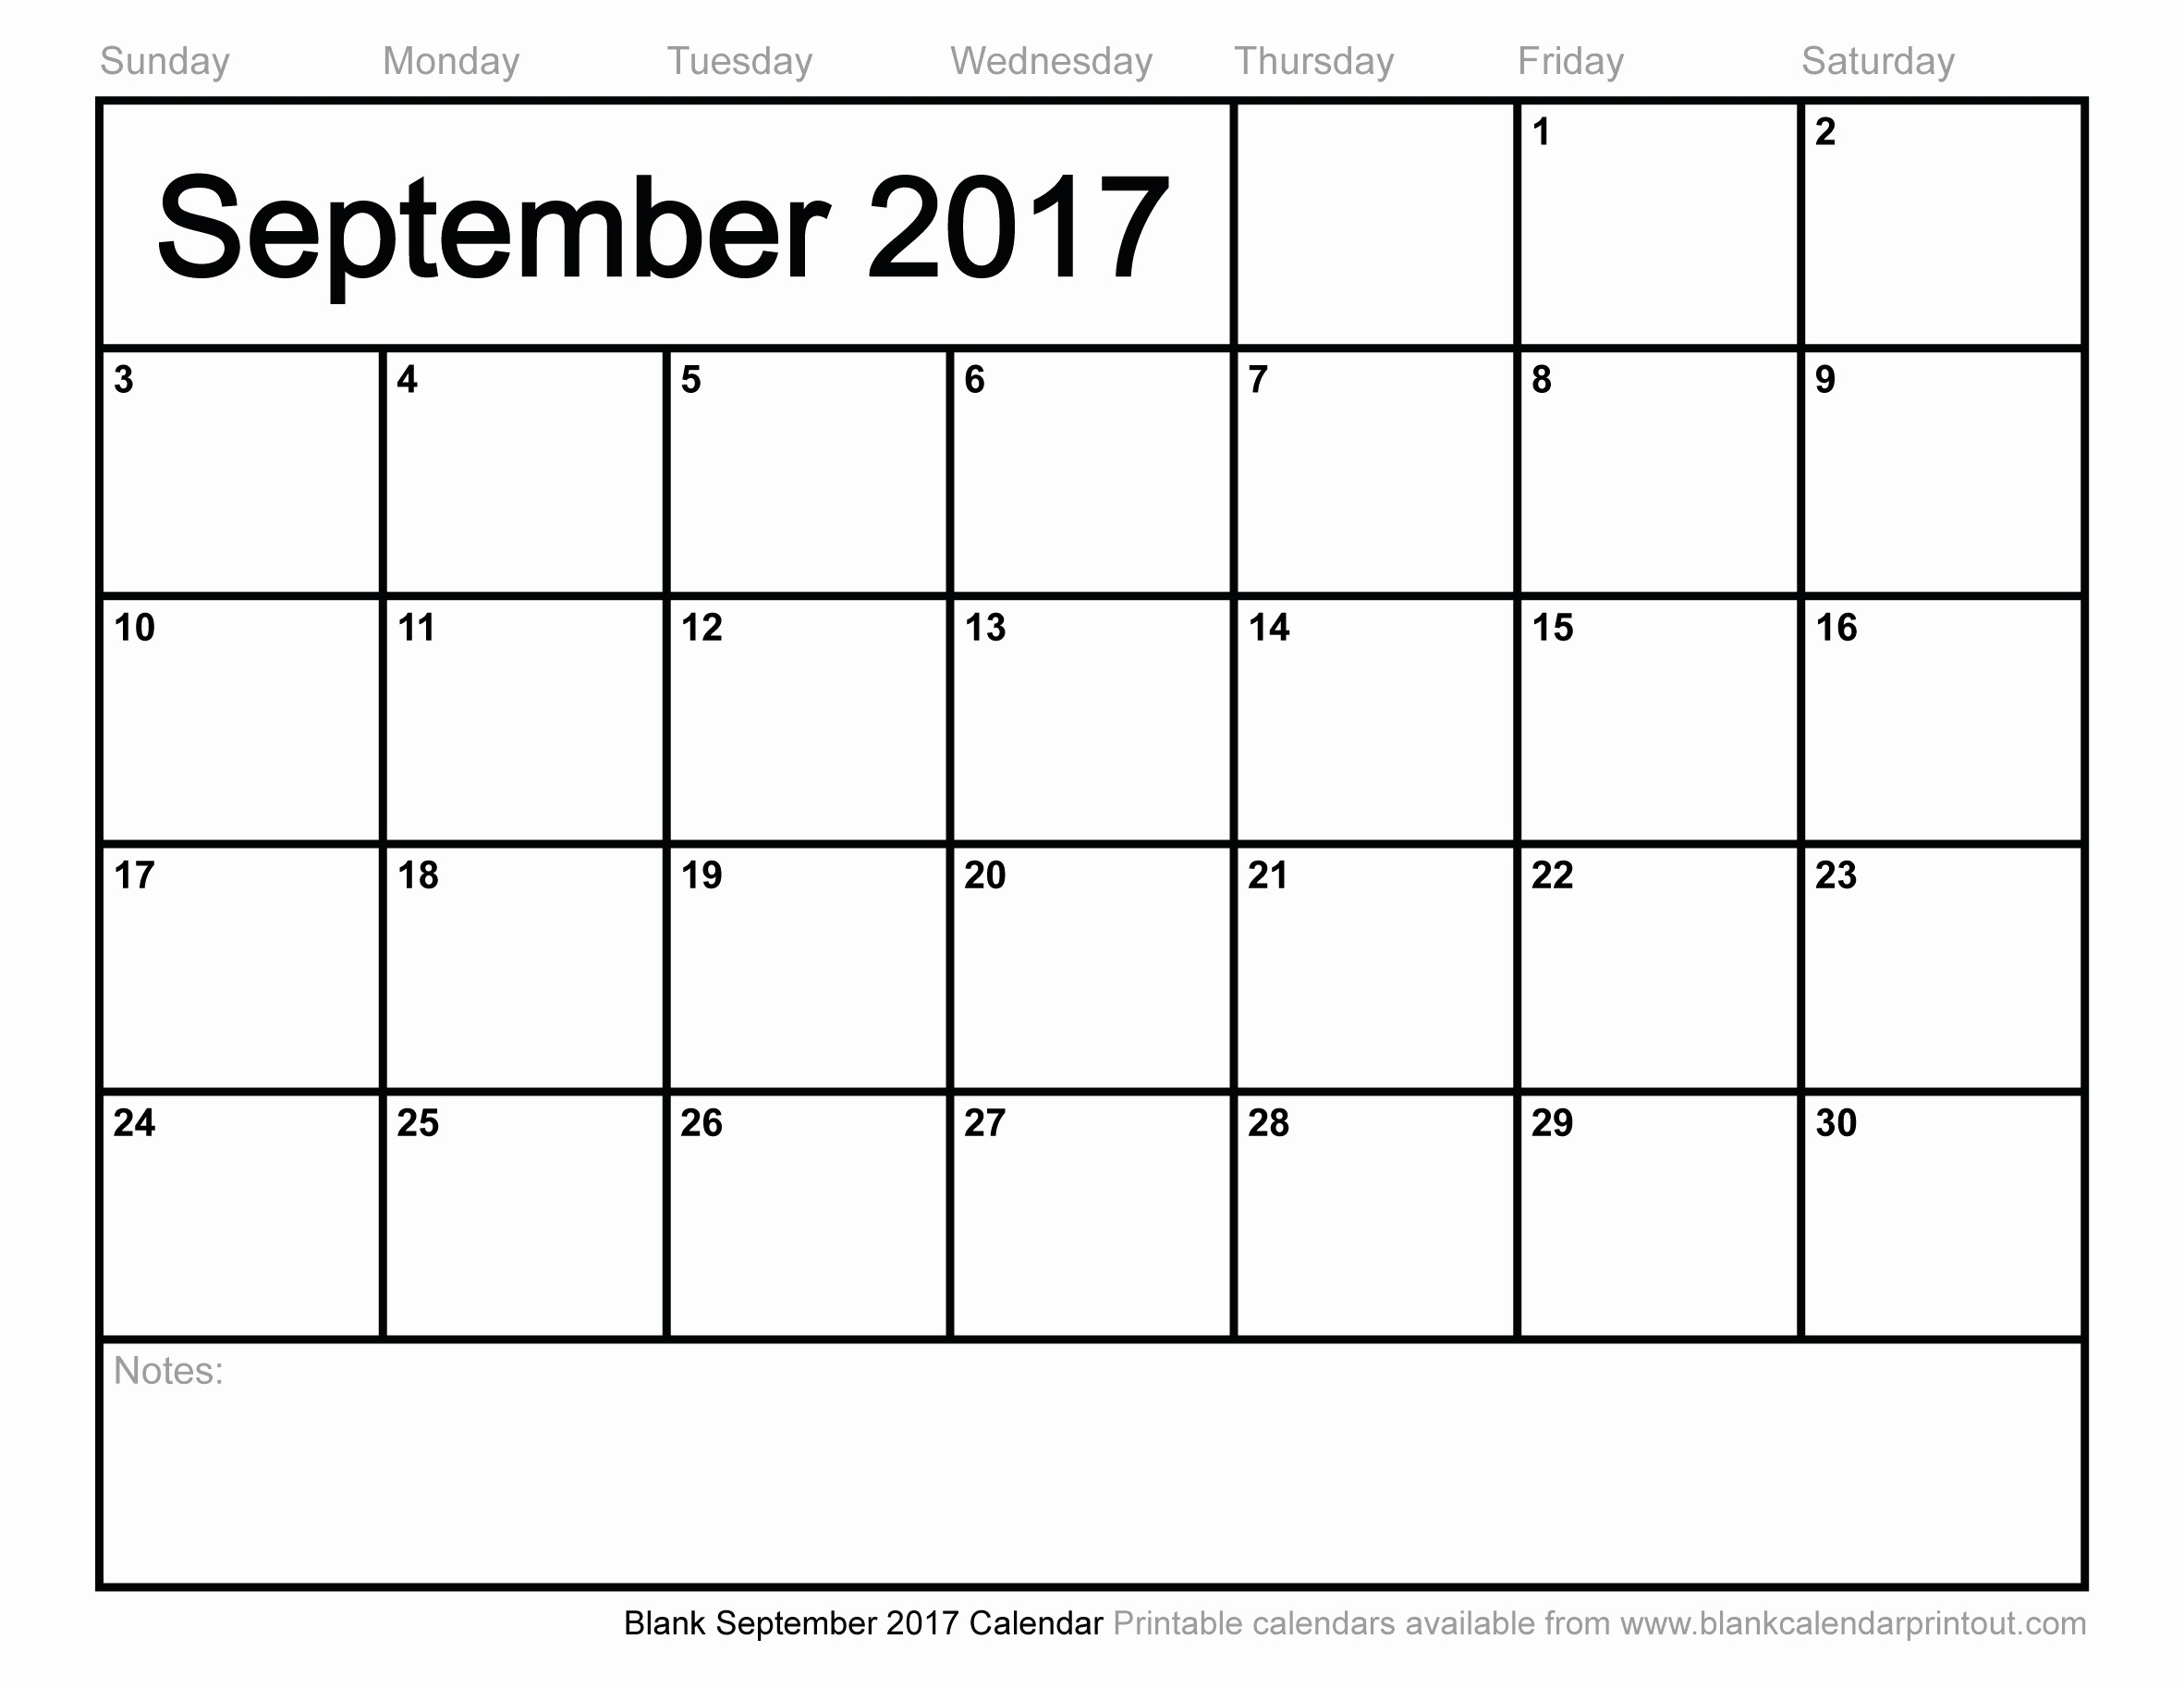 Blank Monthly Calendar 2017 Printable Inspirational Blank September 2017 Calendar to Print